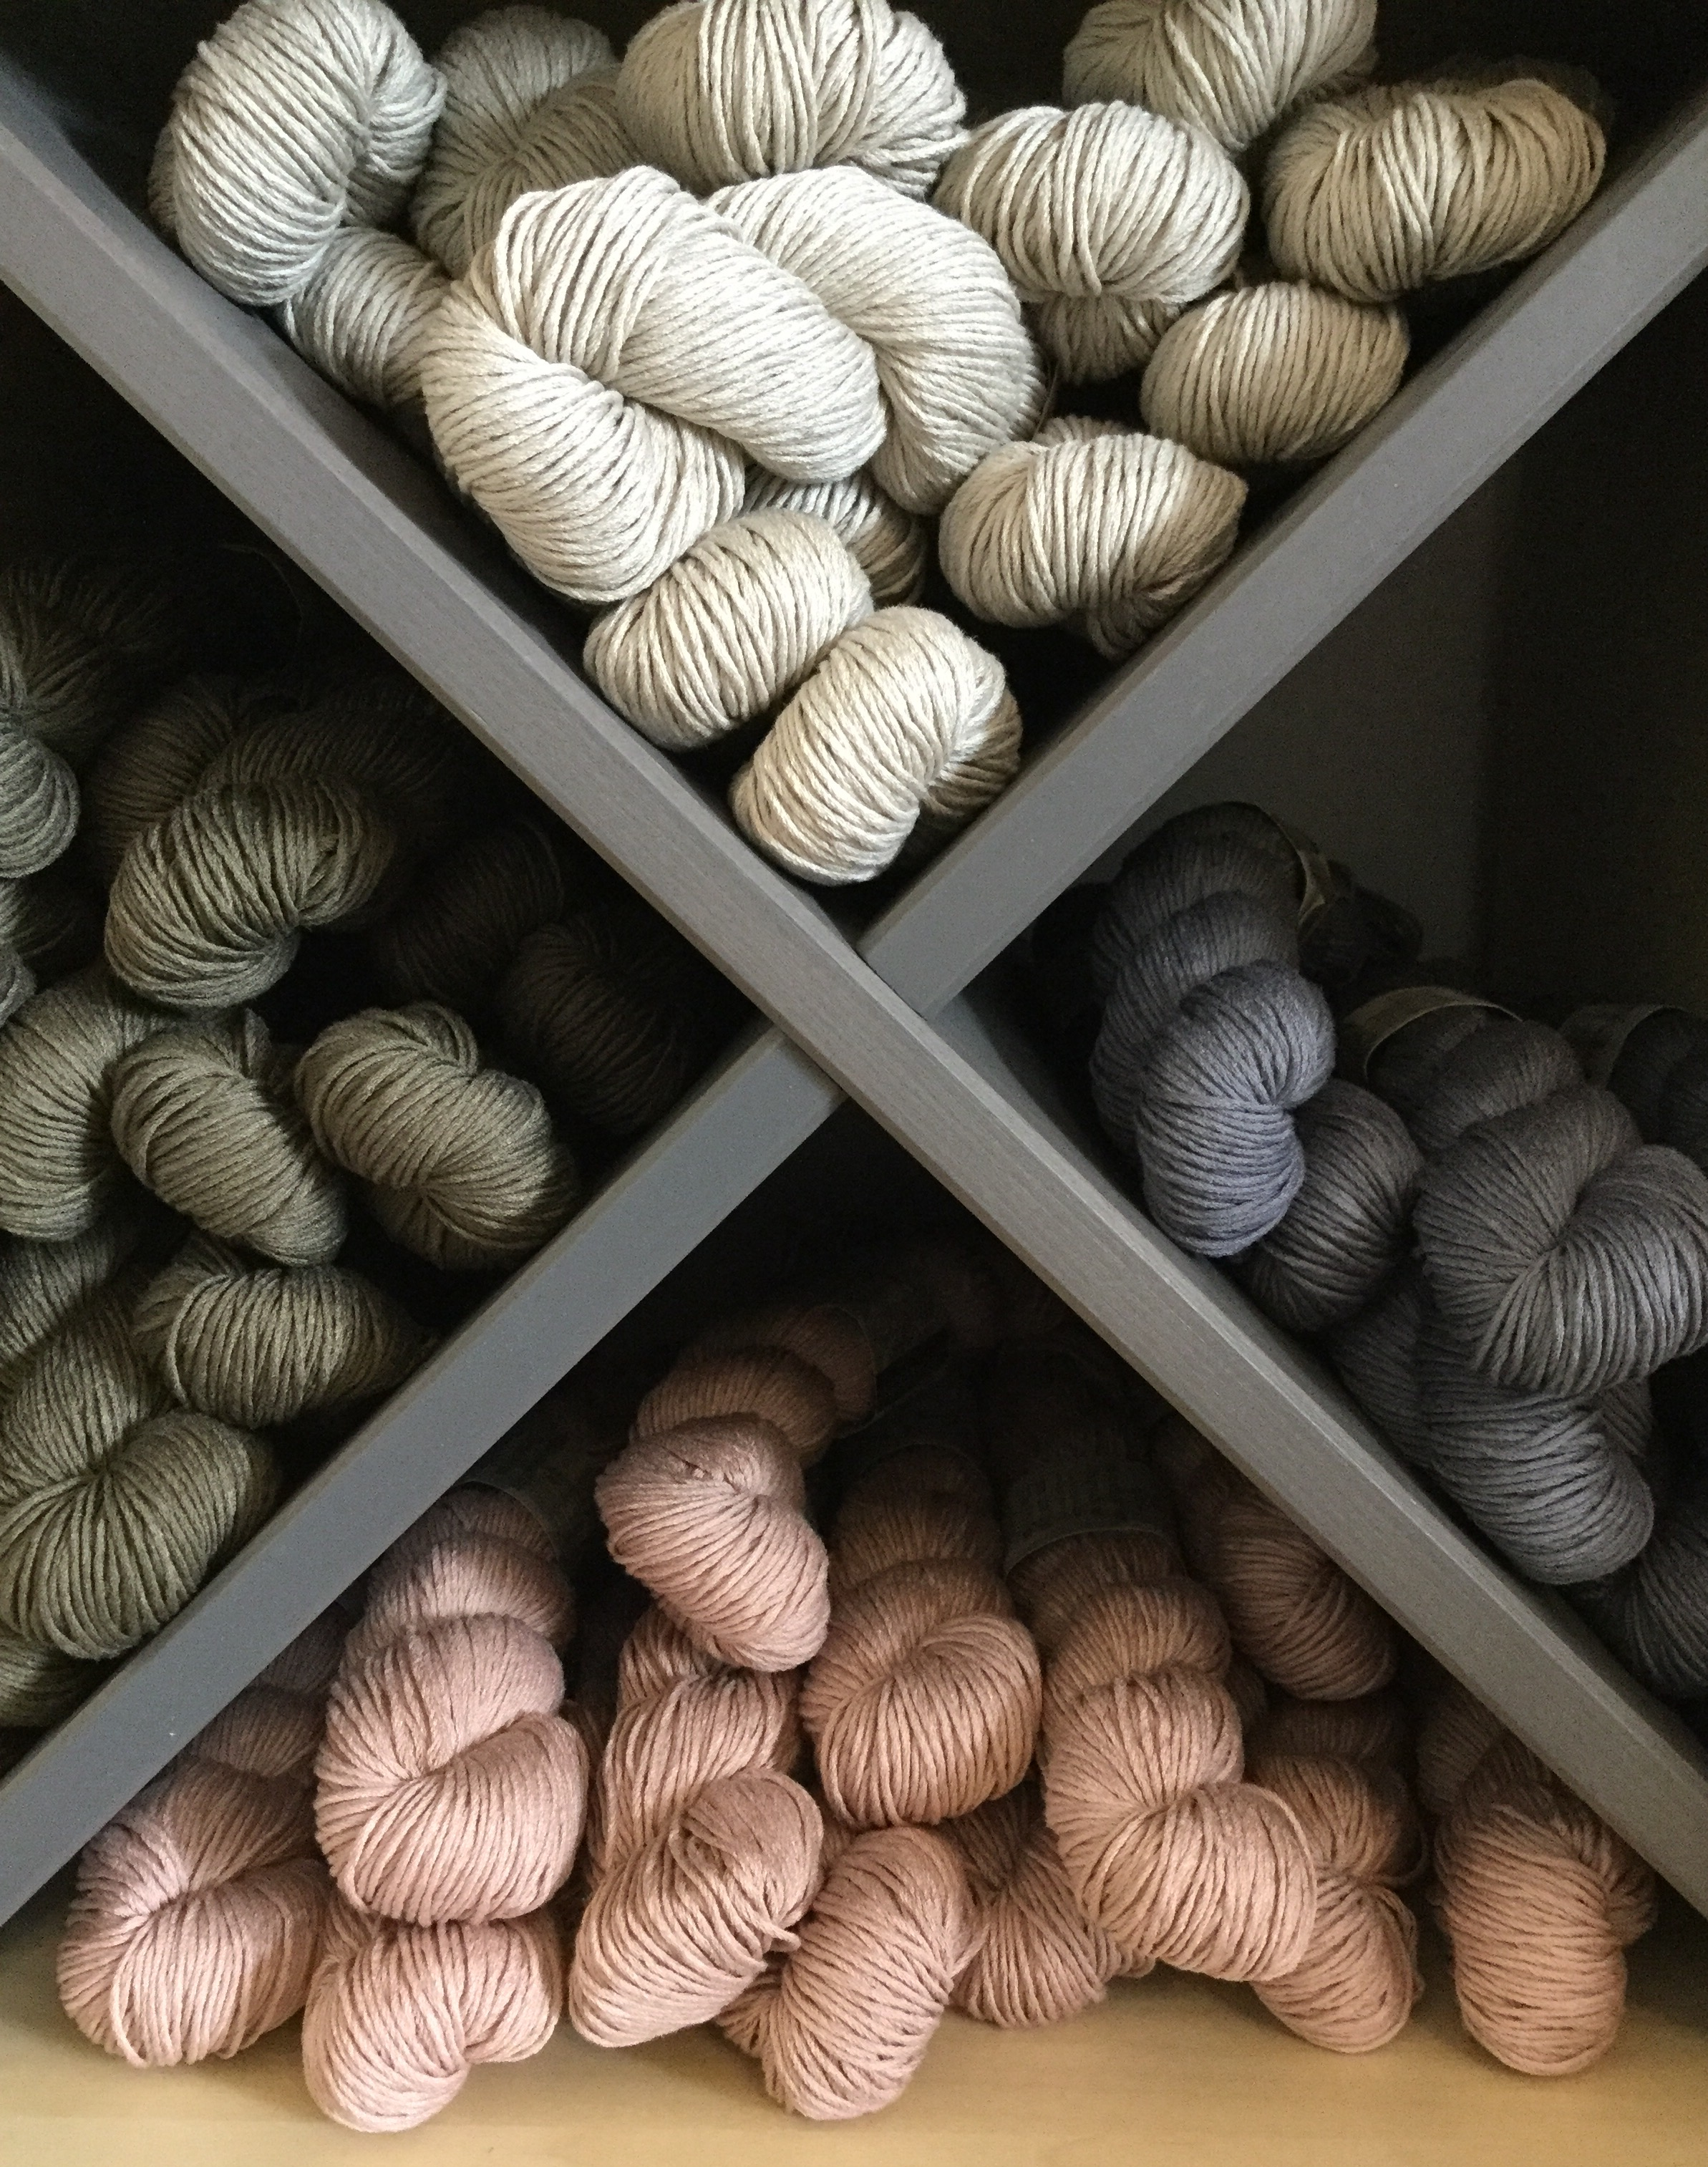 4 of the 8 yarn colours